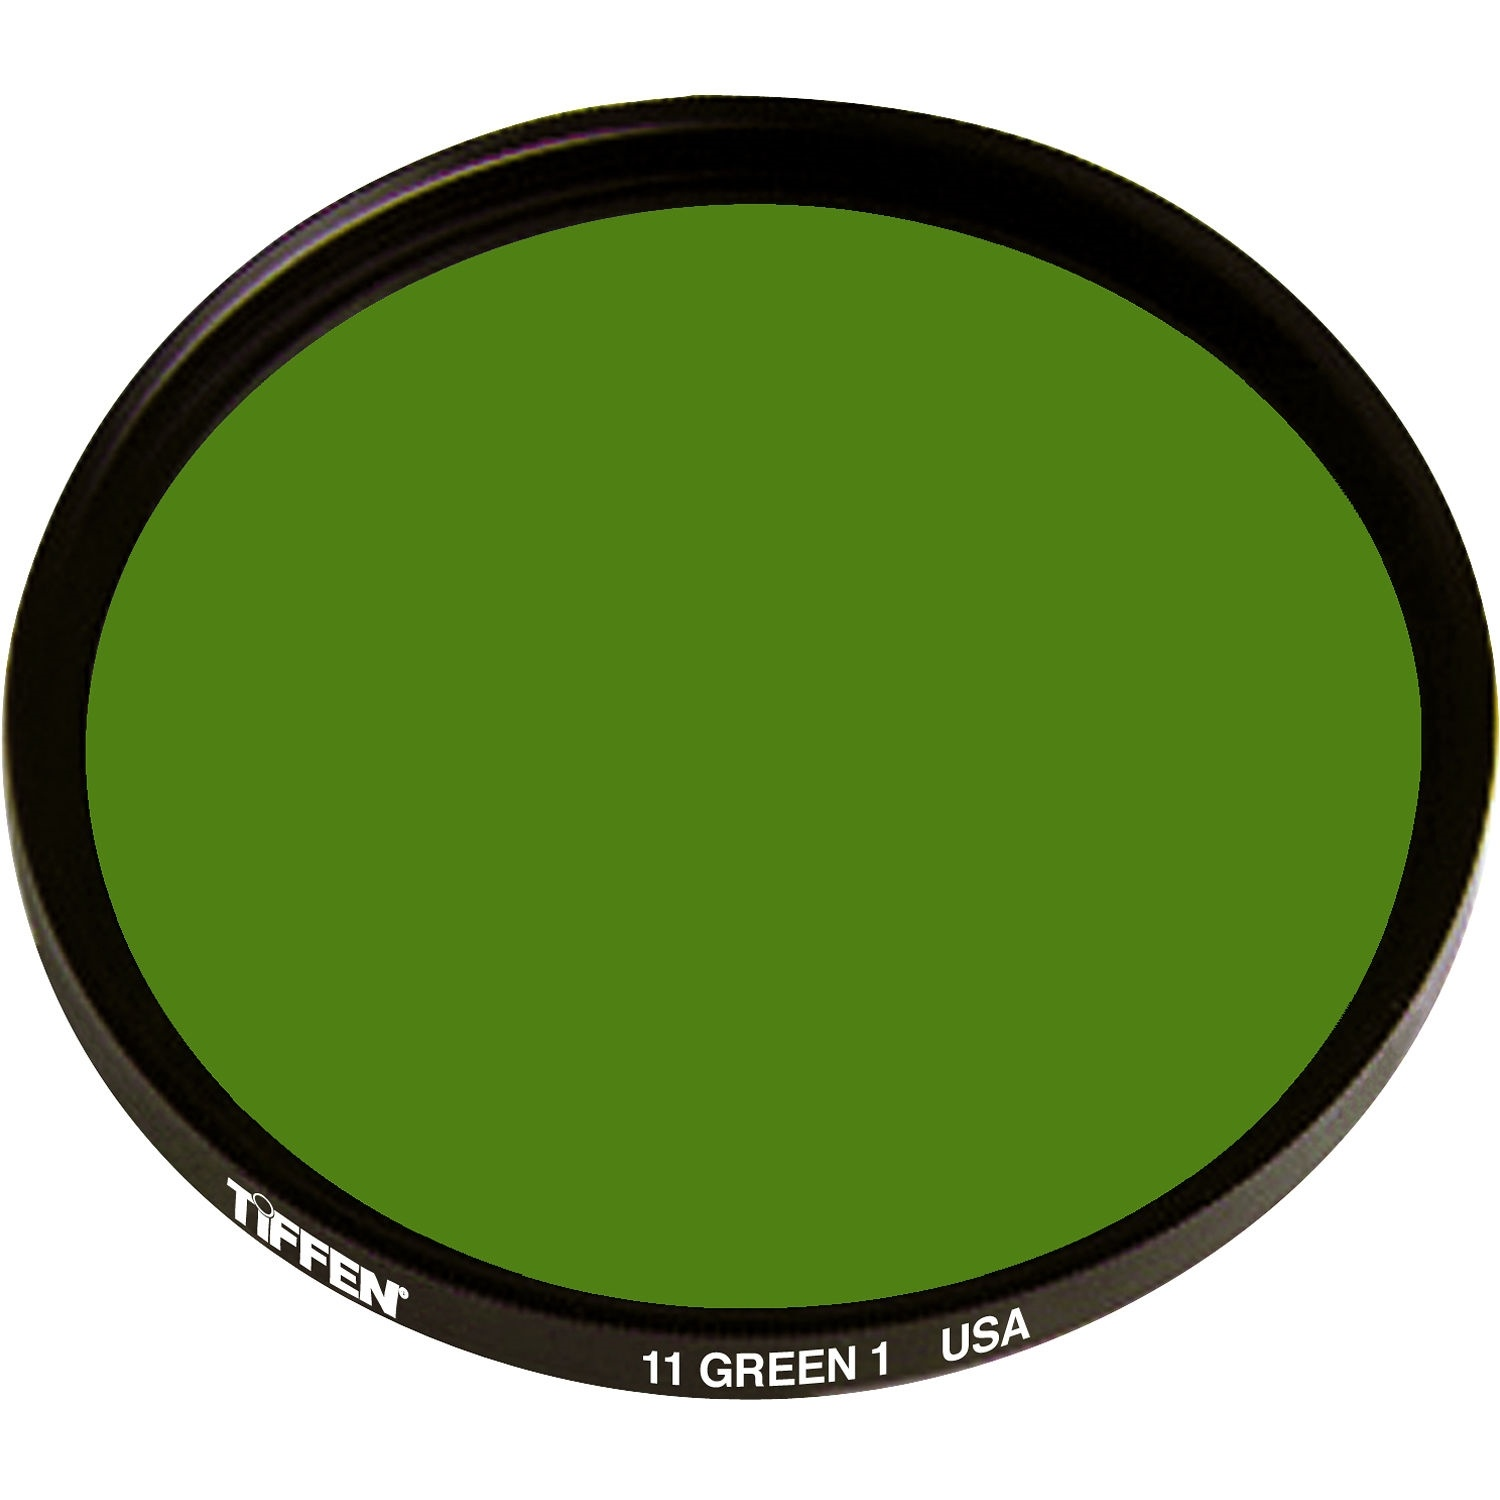 Tiffen 11 Green (1) Filter (43mm)